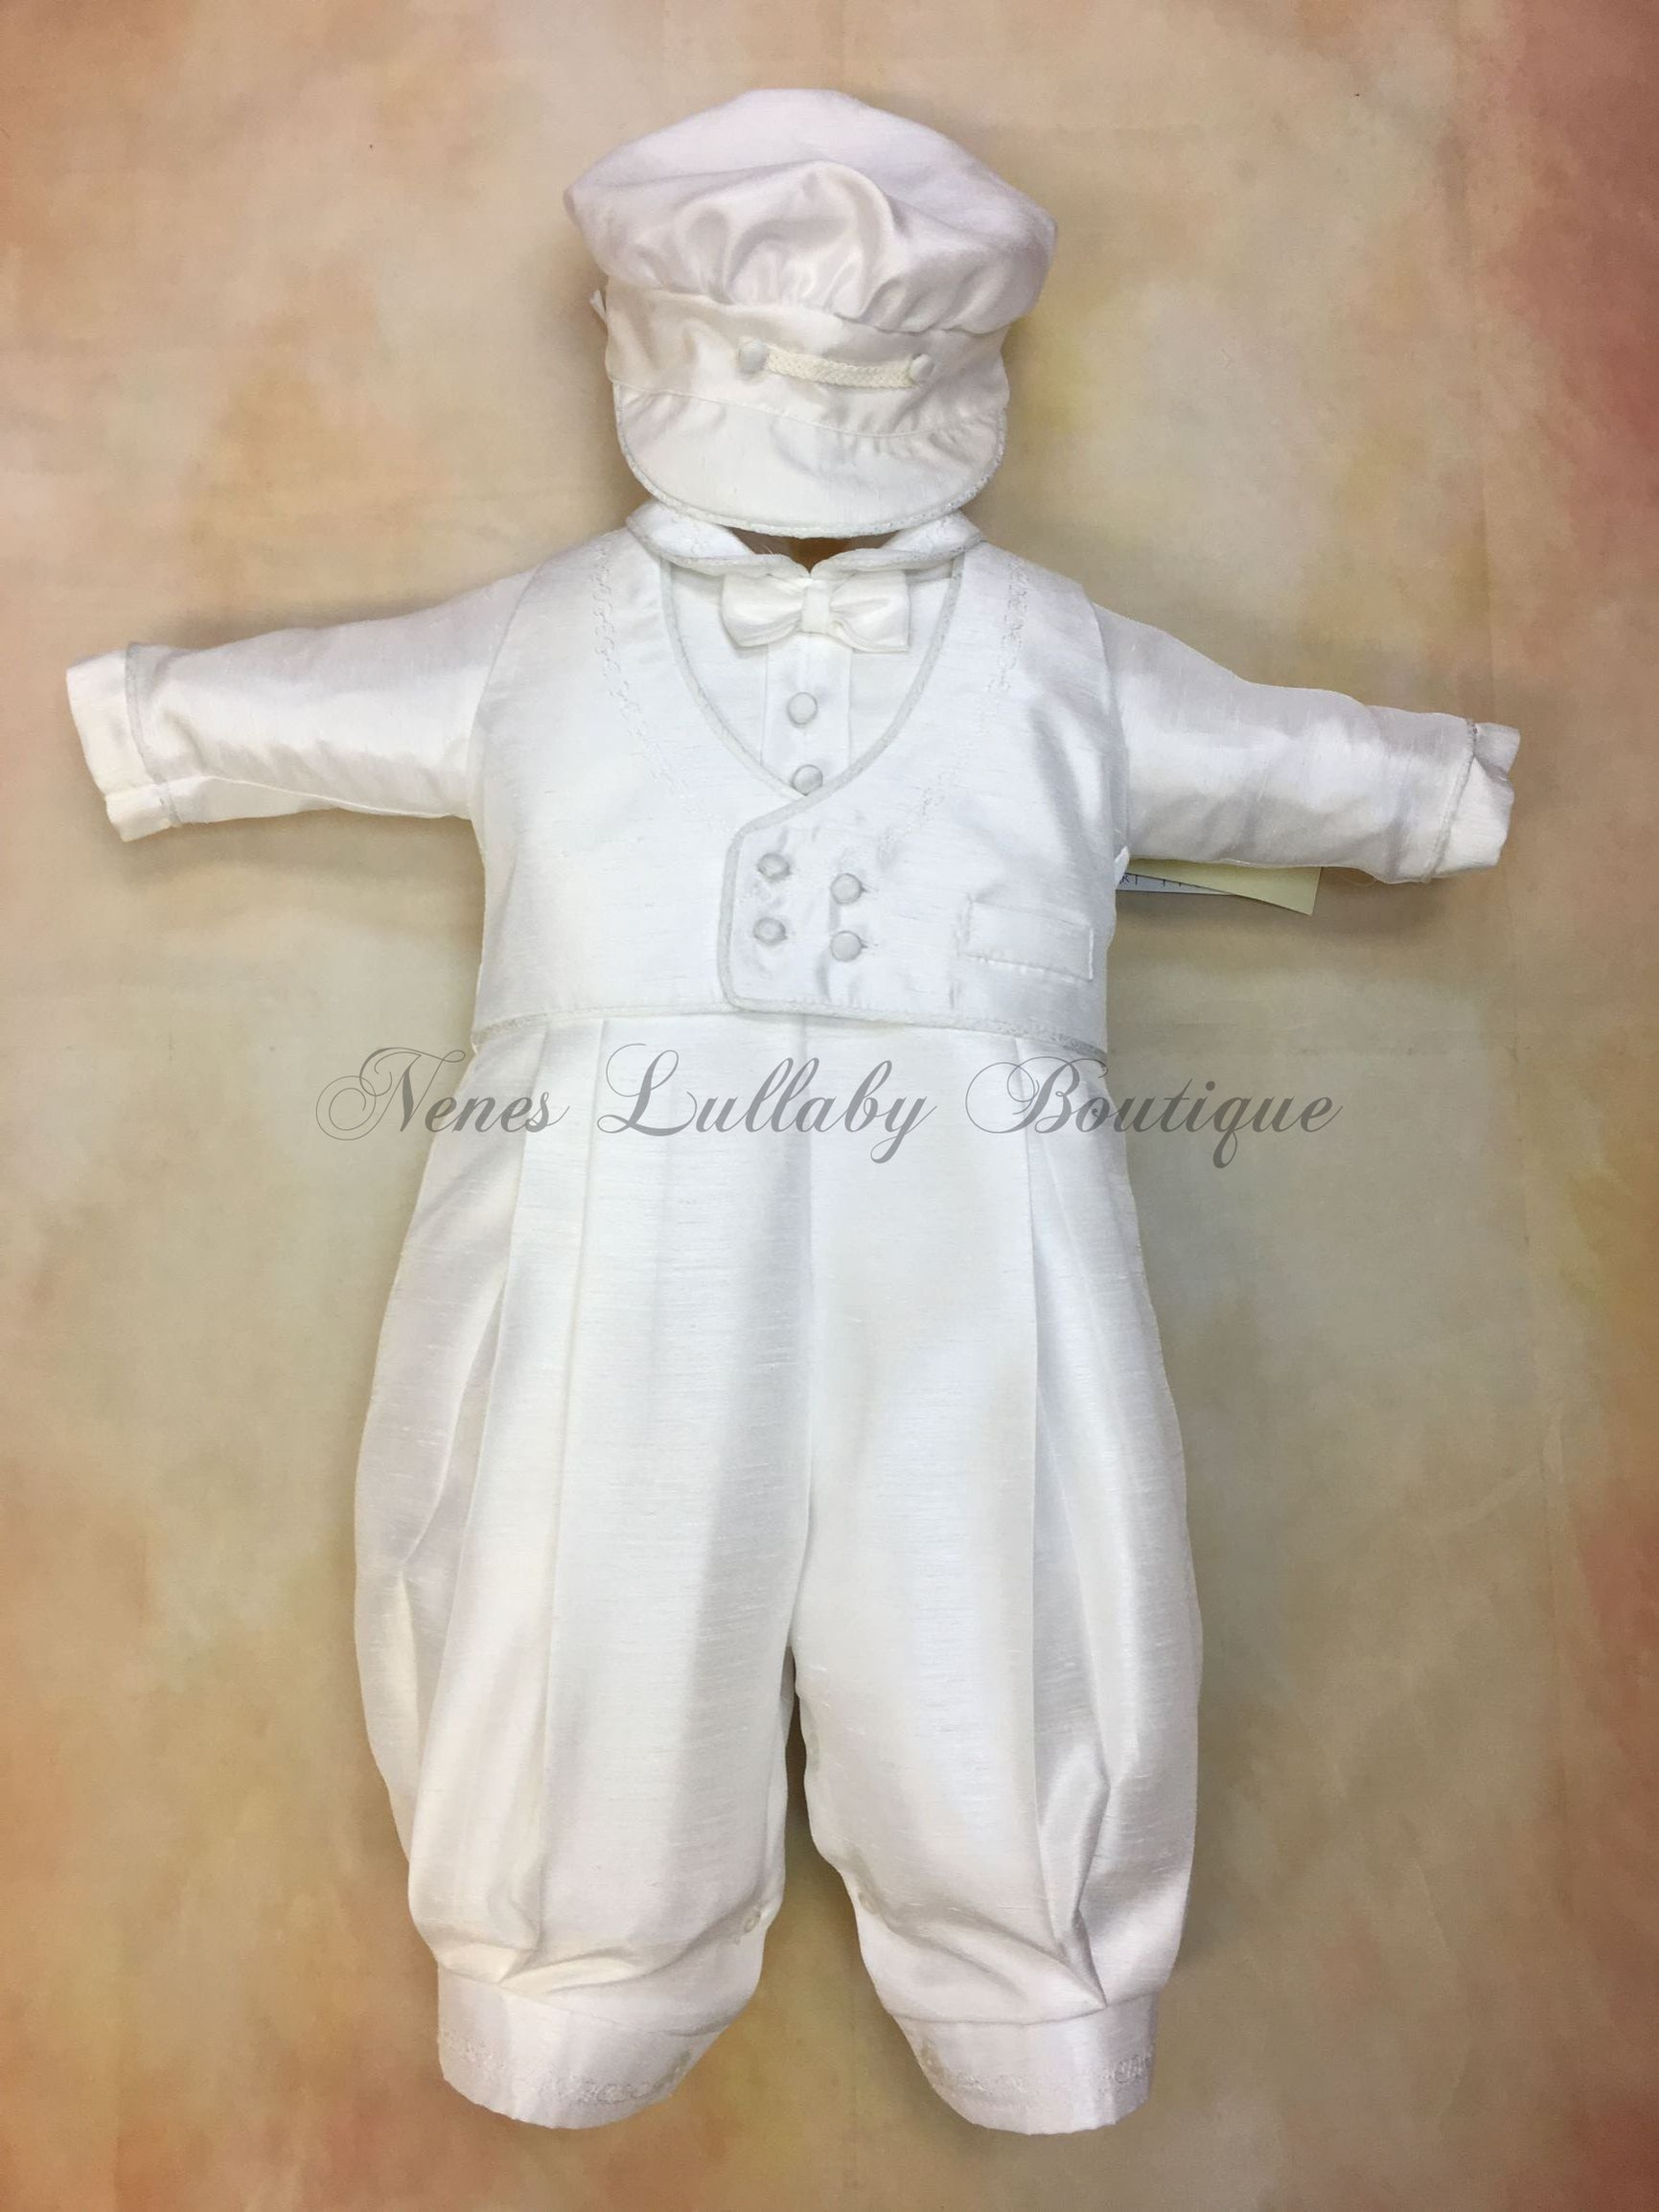 Willie Shantung Christening outfit by Piccolo Bacio PB_Willie_sh_ls_lp